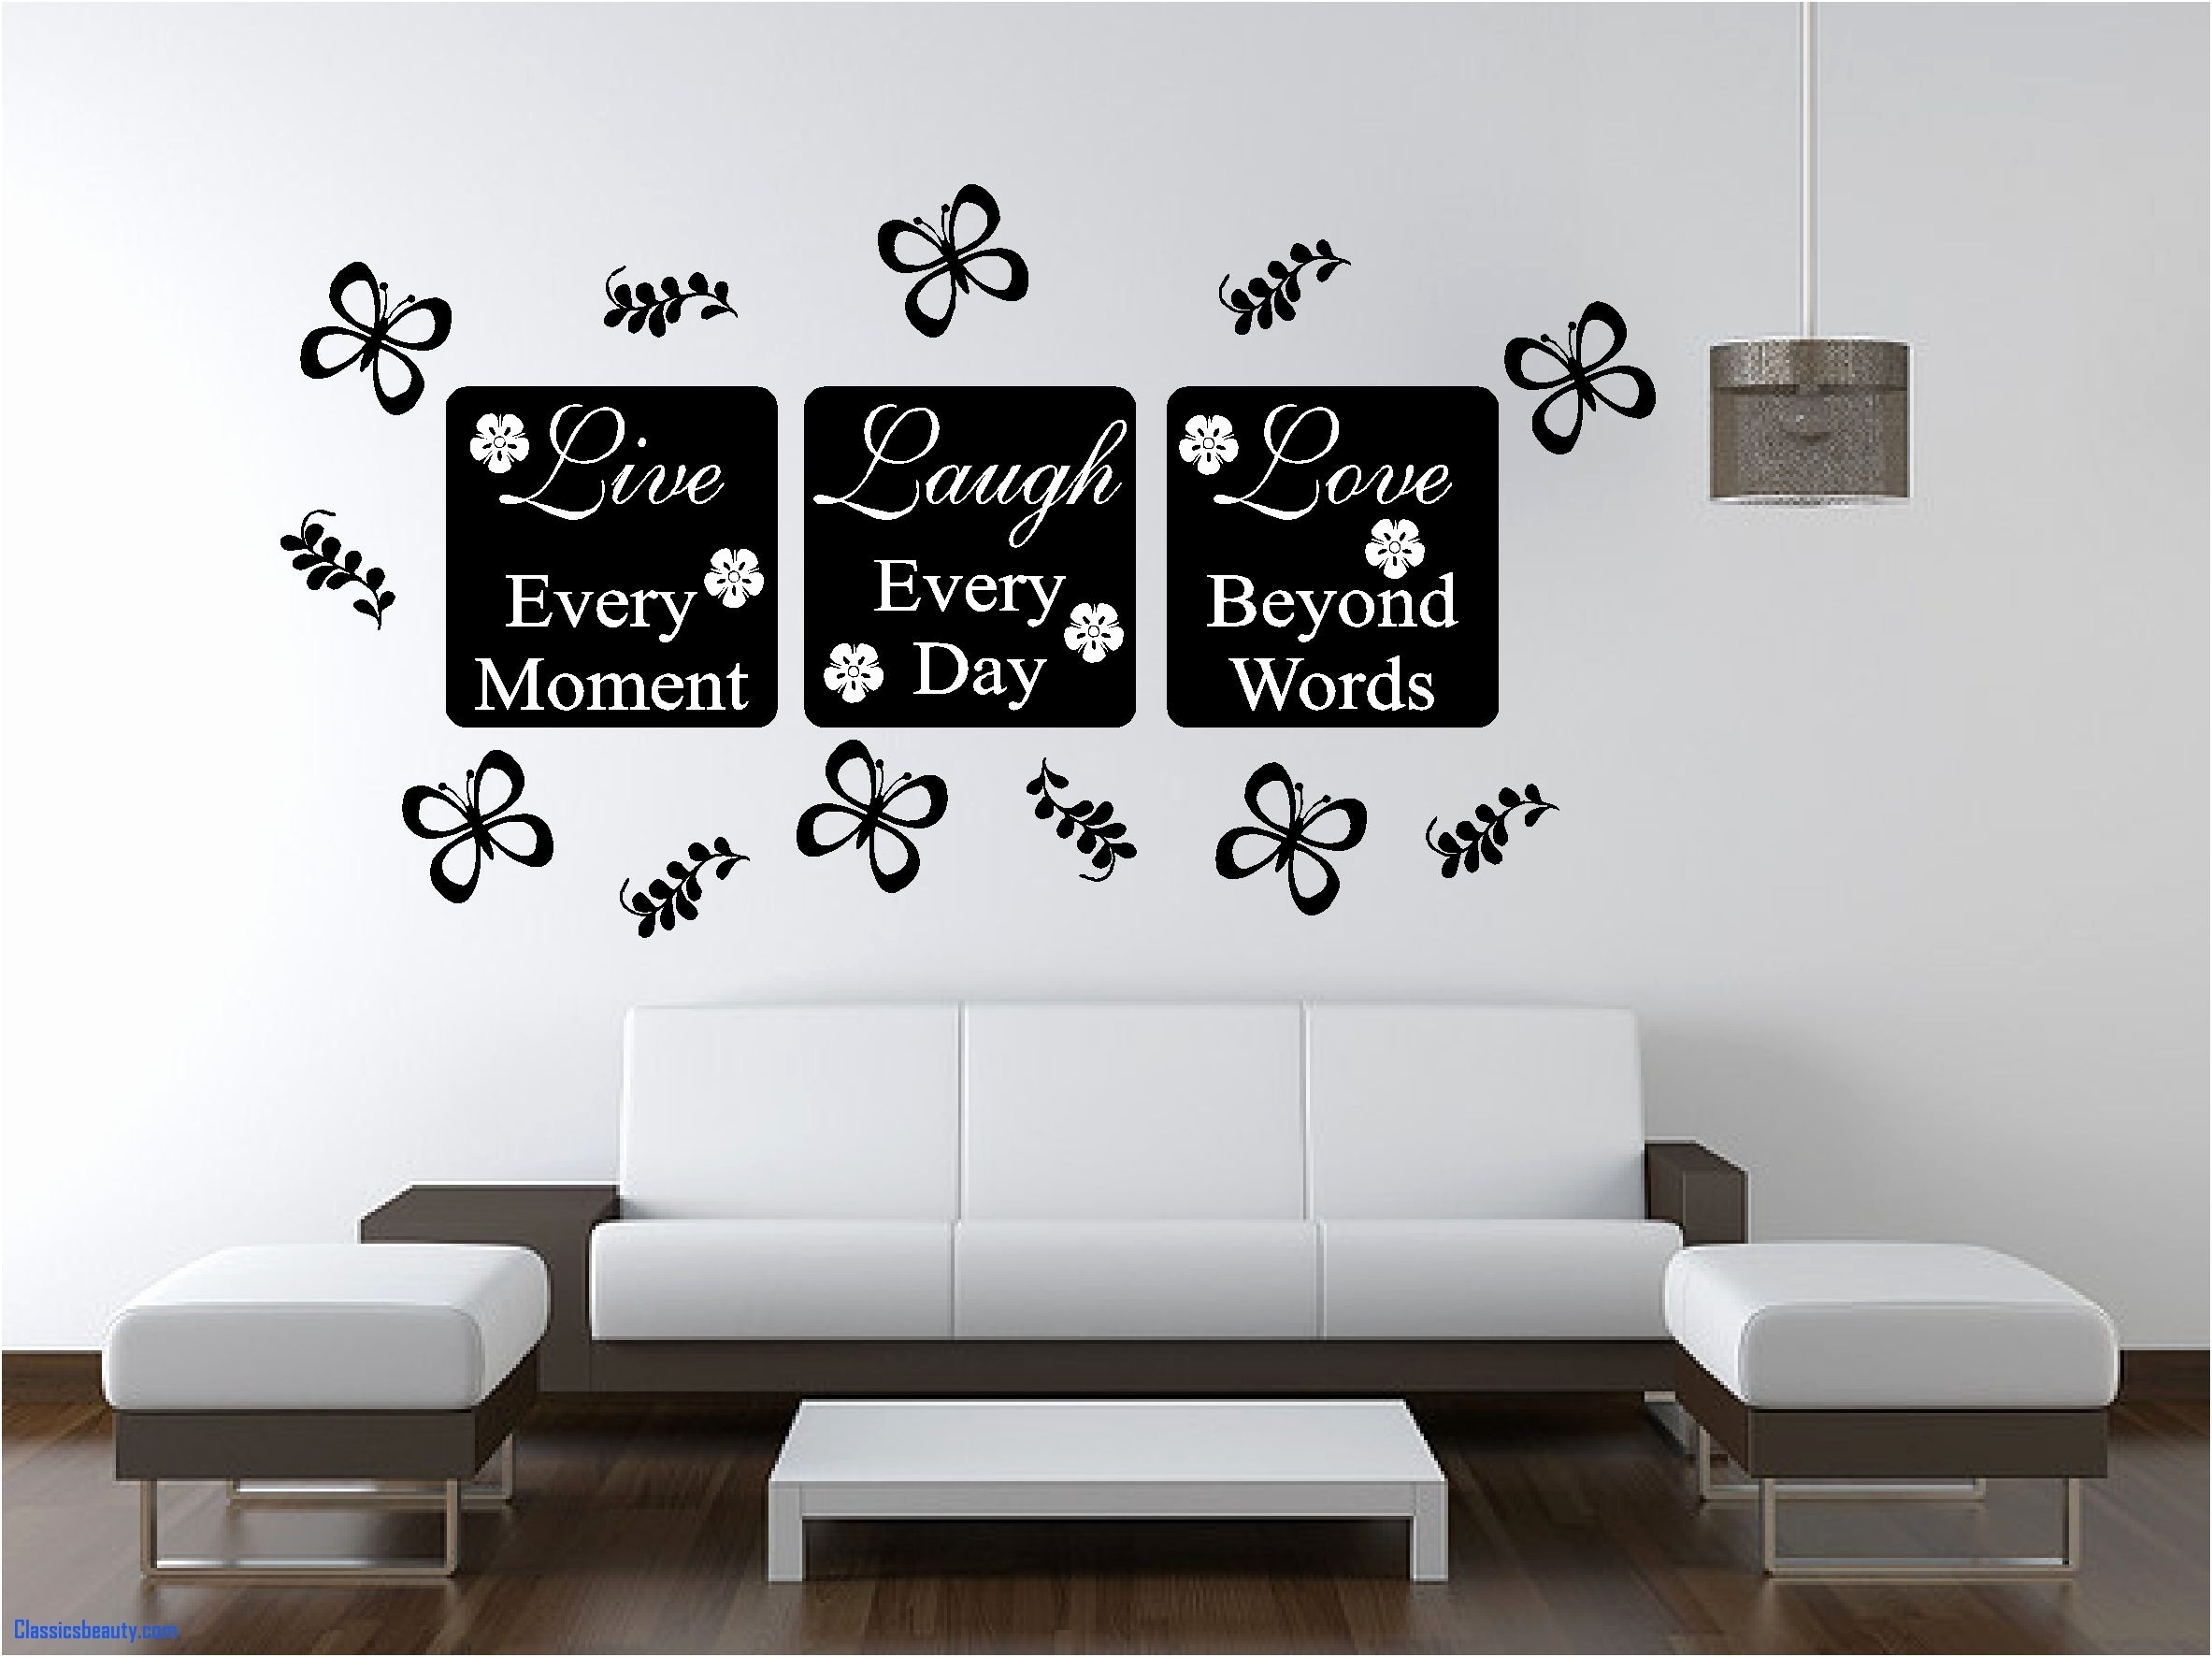 Bedroom Wall Art Fresh Living Room Wall Art Ideas Inspirational Throughout Current Wall Art For Bedroom (View 12 of 15)